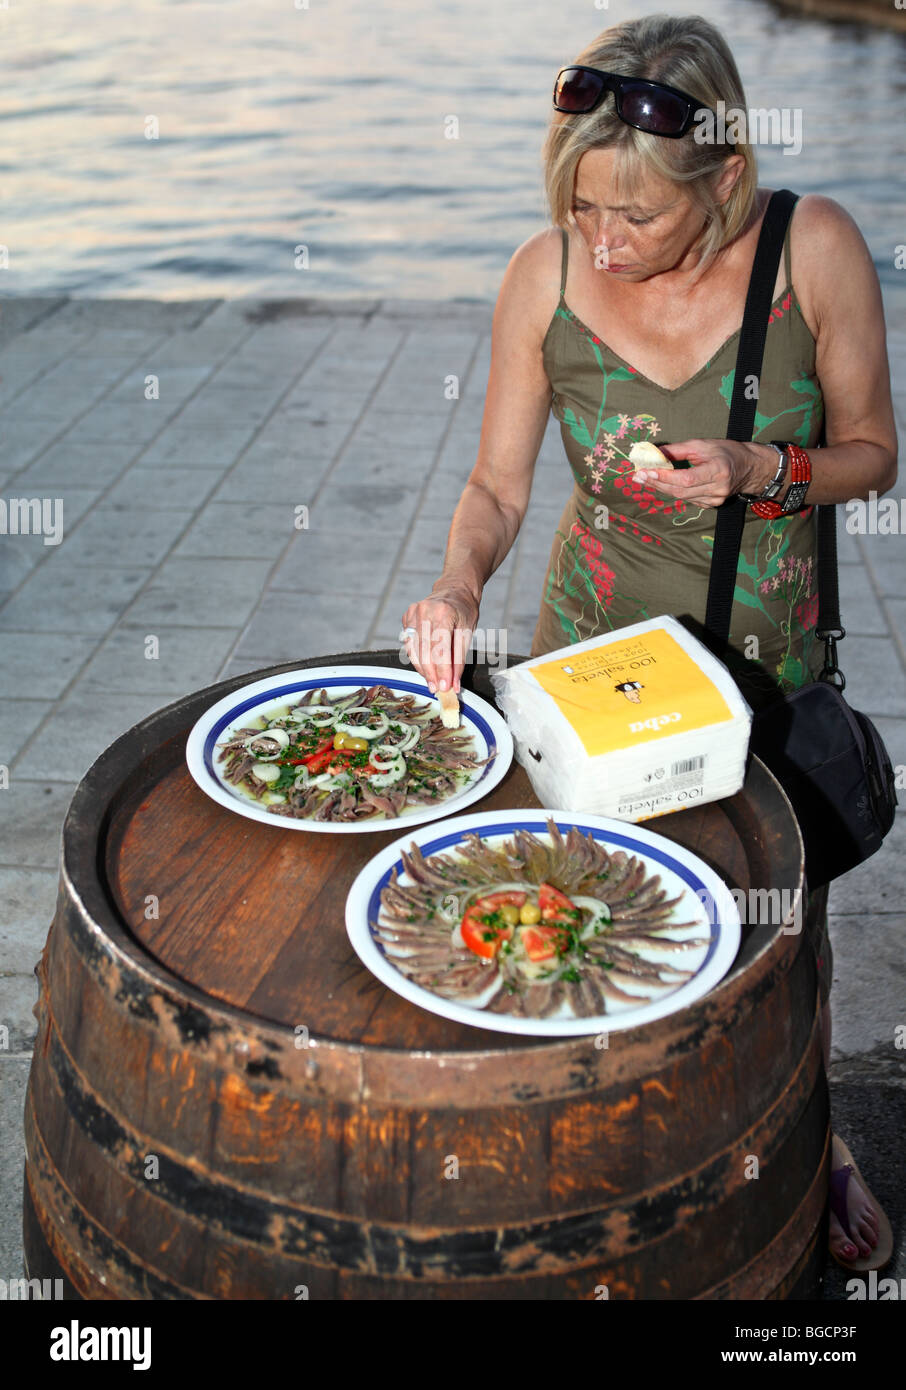 Middle aged woman tastes salted anchovies fillets served on improvised table made out of old barrel. - Stock Image